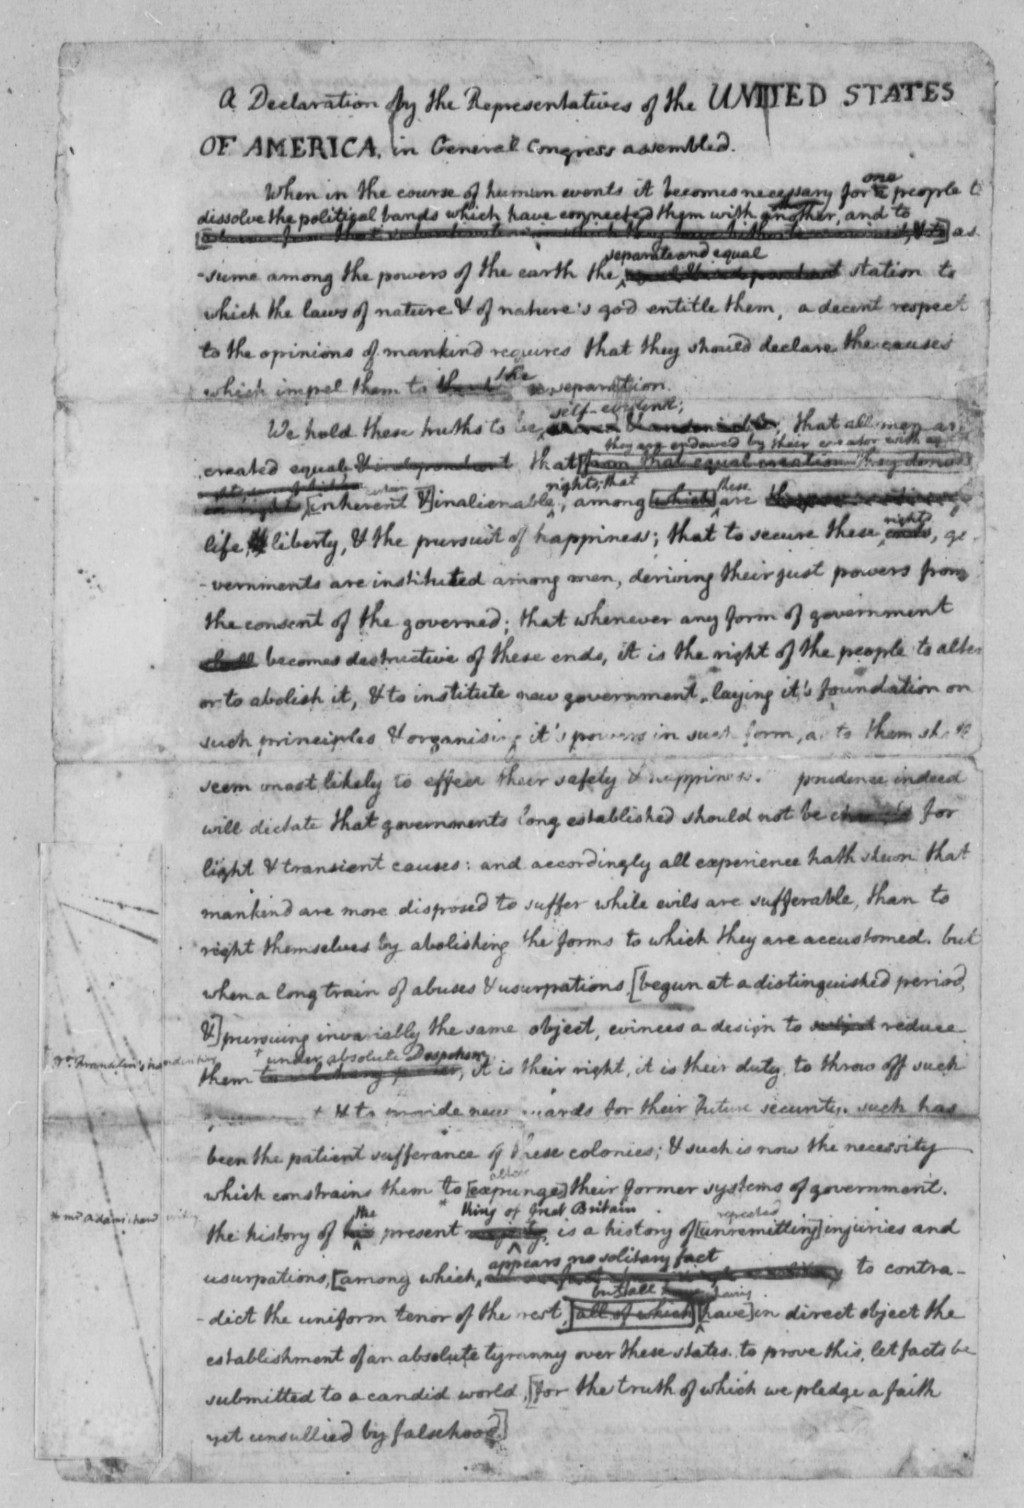 004 Thomas Jefferson Essay 3753820390 Slavery Magnificent Questions High School Sample Large